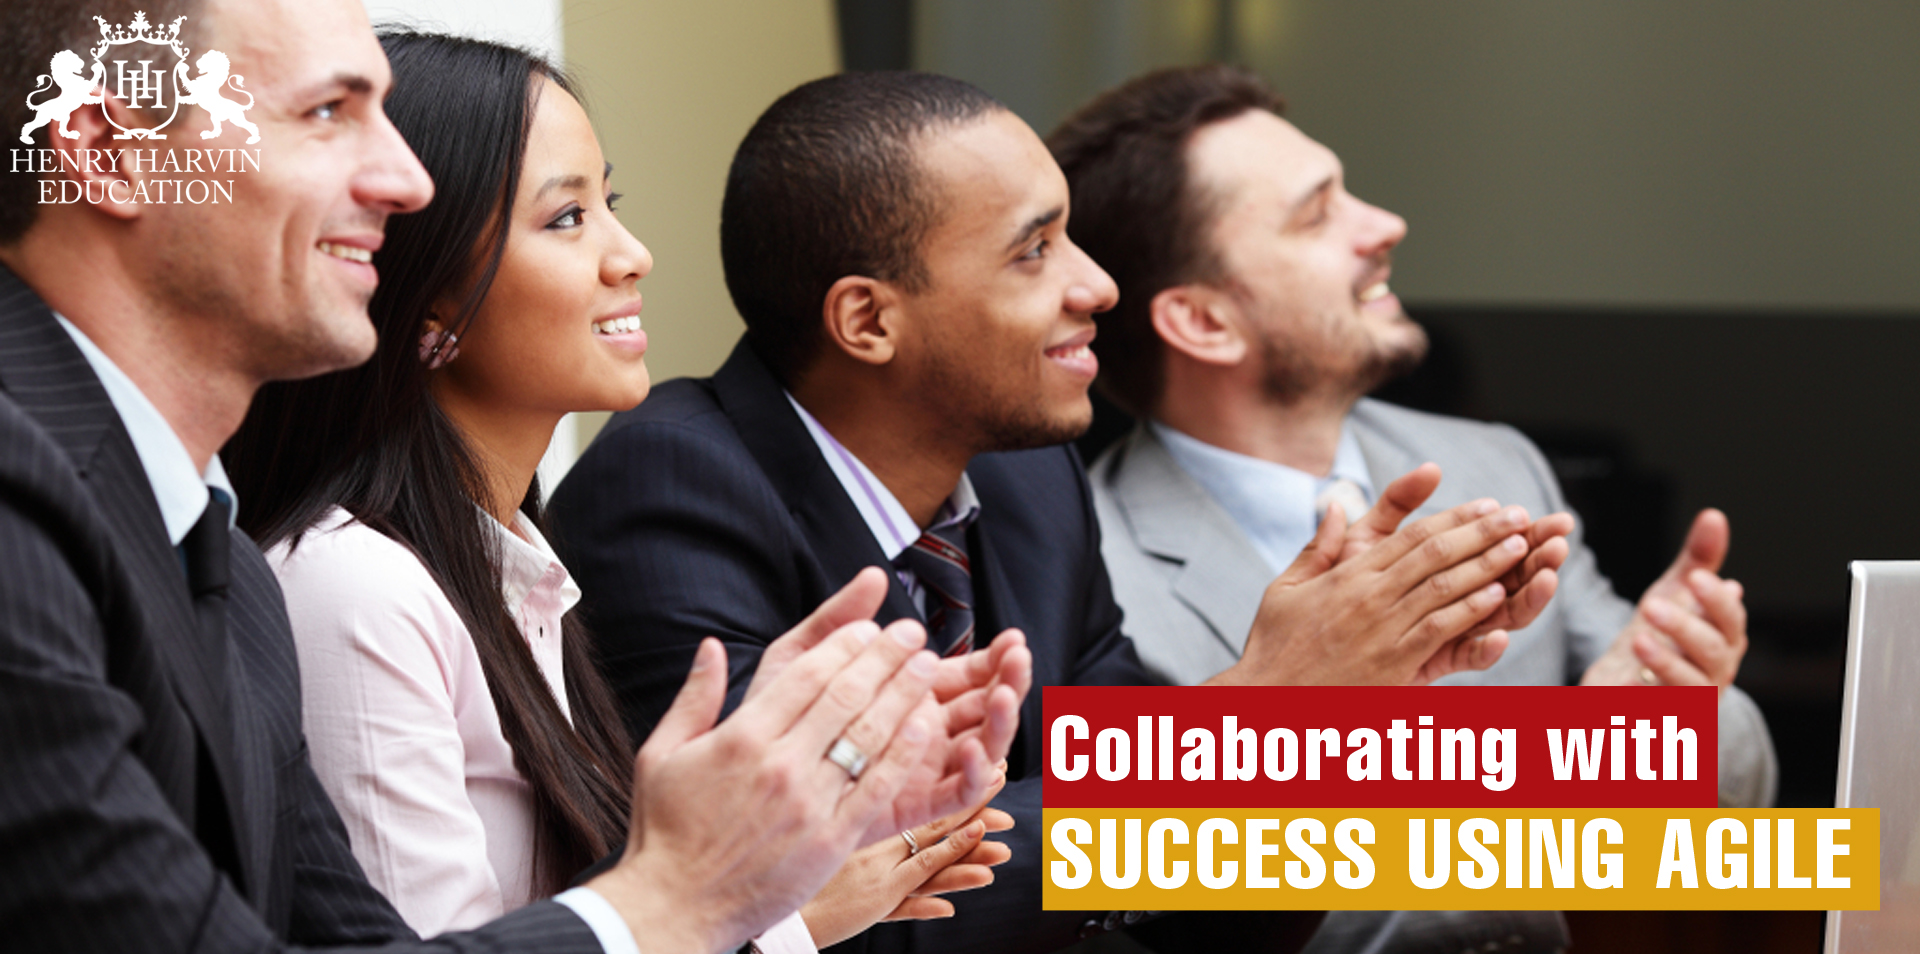 Agile Methodology and collaborating with Success through its Principle